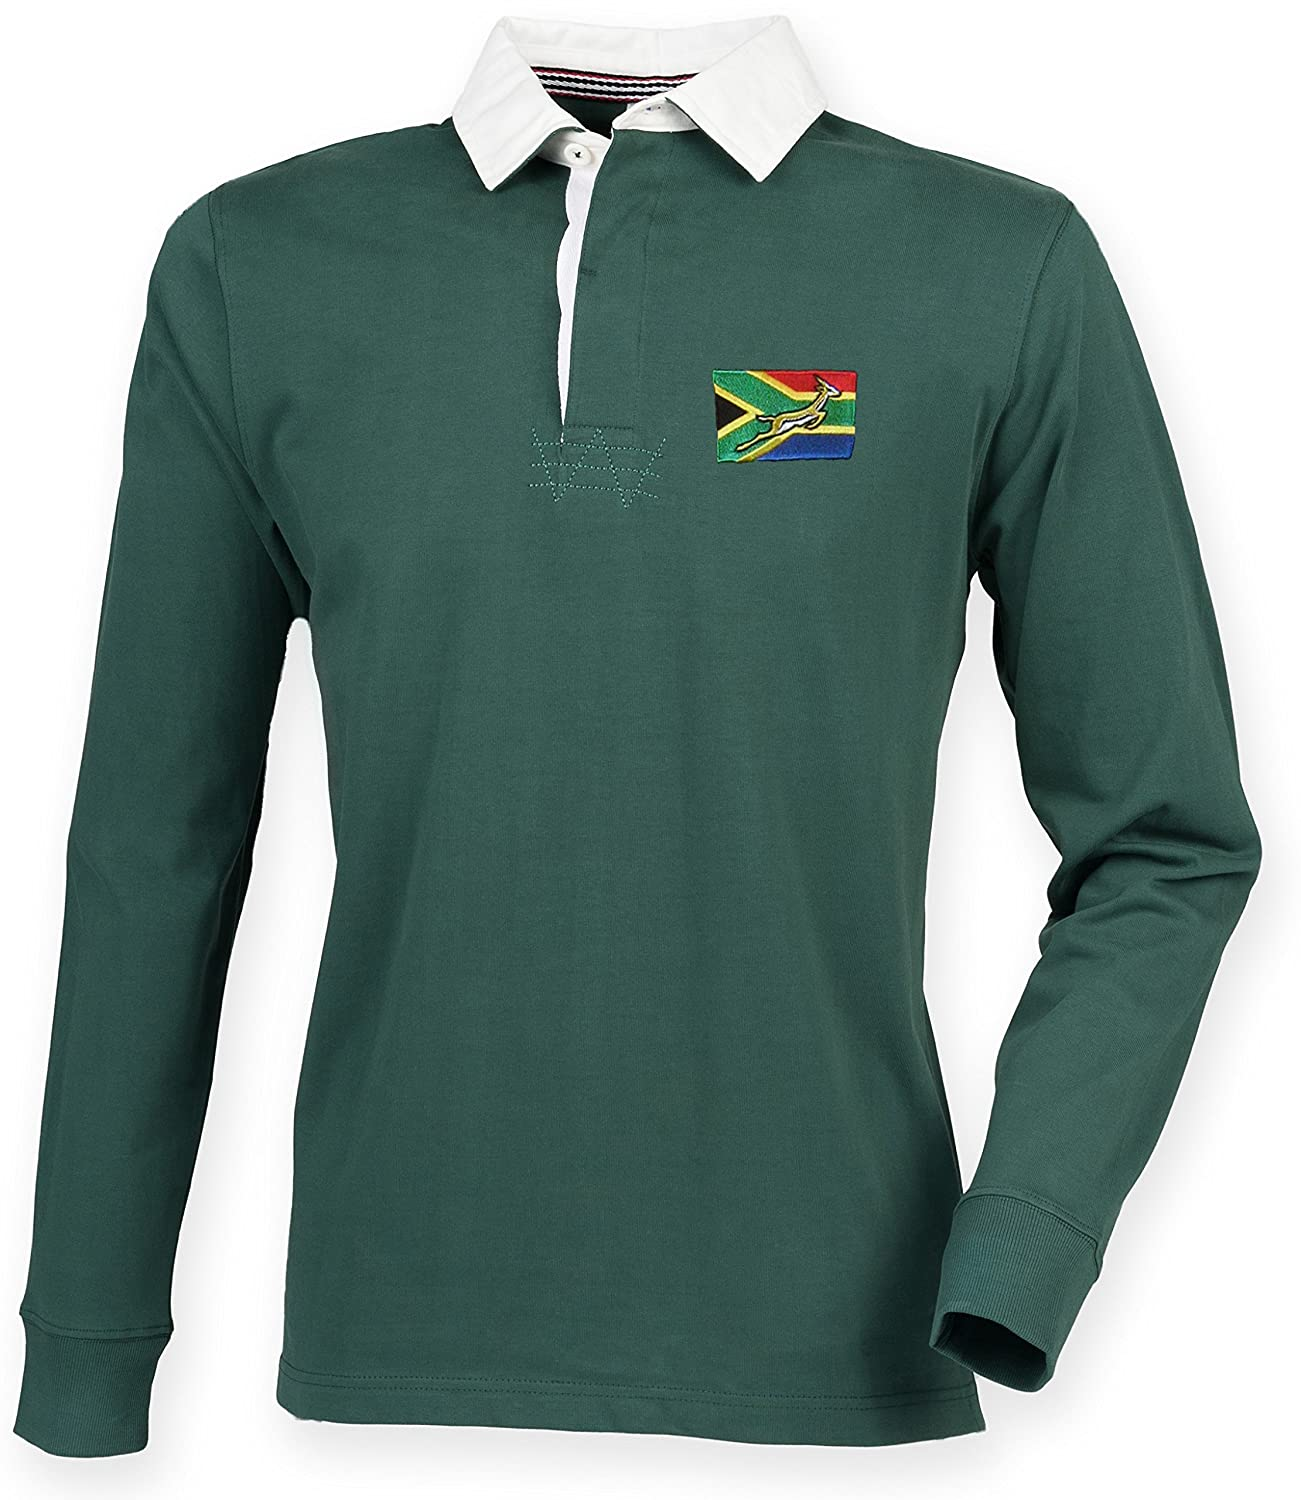 a5dc43942f1 KC INKS South Africa Rugby Shirt with Free Personalization: Amazon.co.uk:  Sports & Outdoors